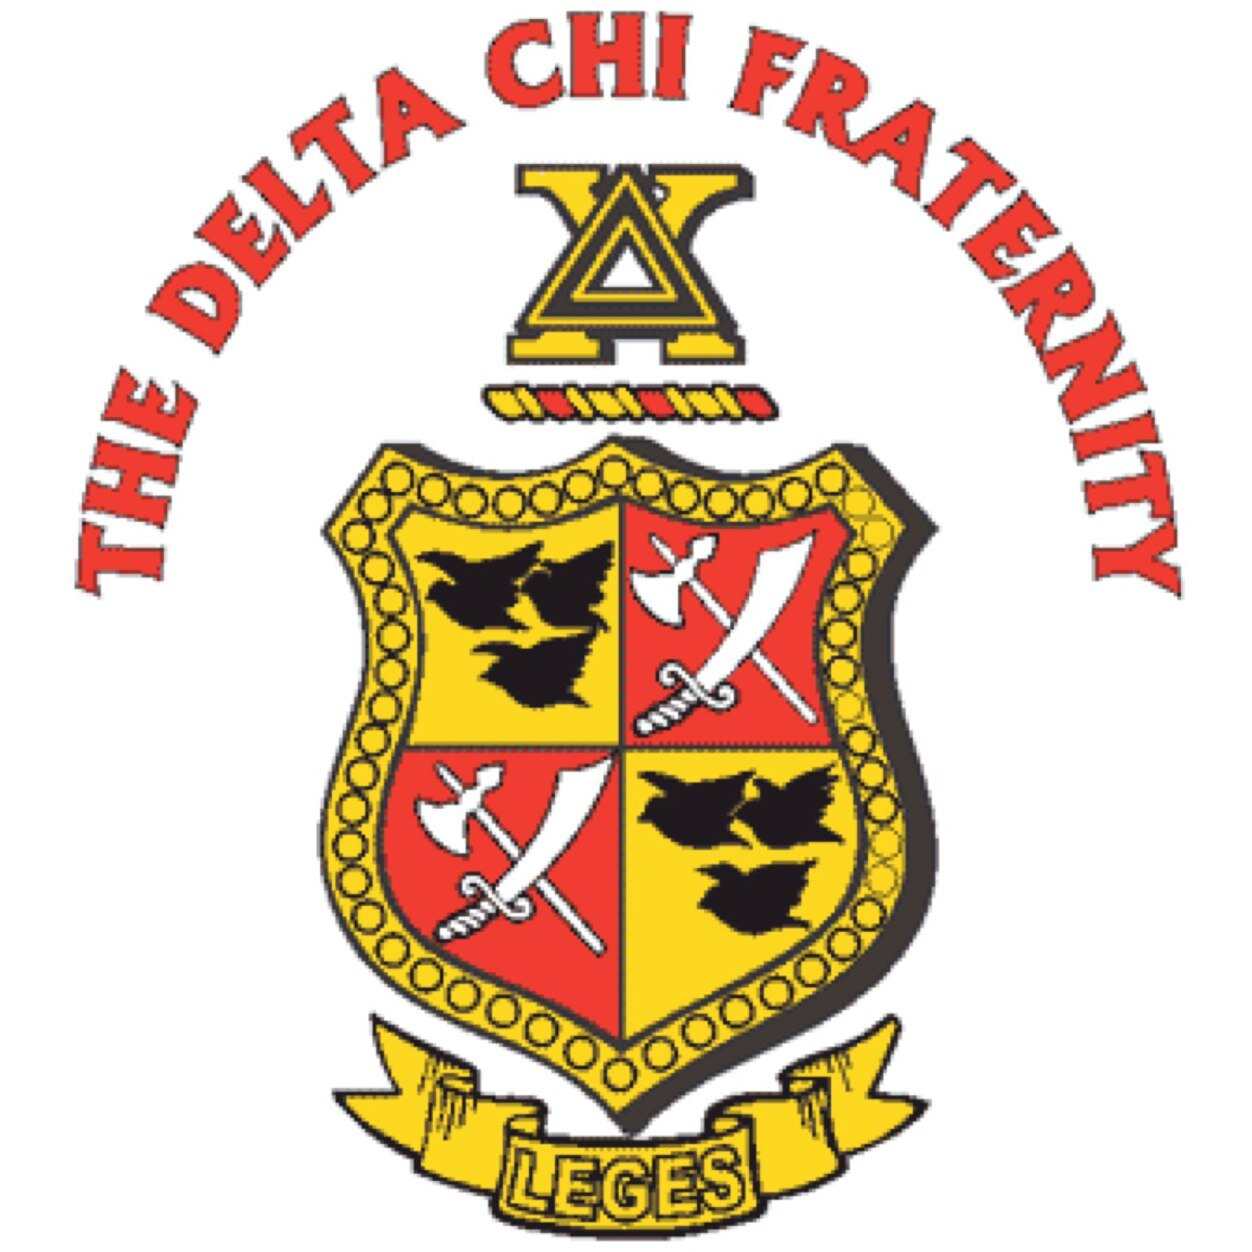 Wcu Delta Chi On Twitter Congrats To Our Brother Chad On Winning